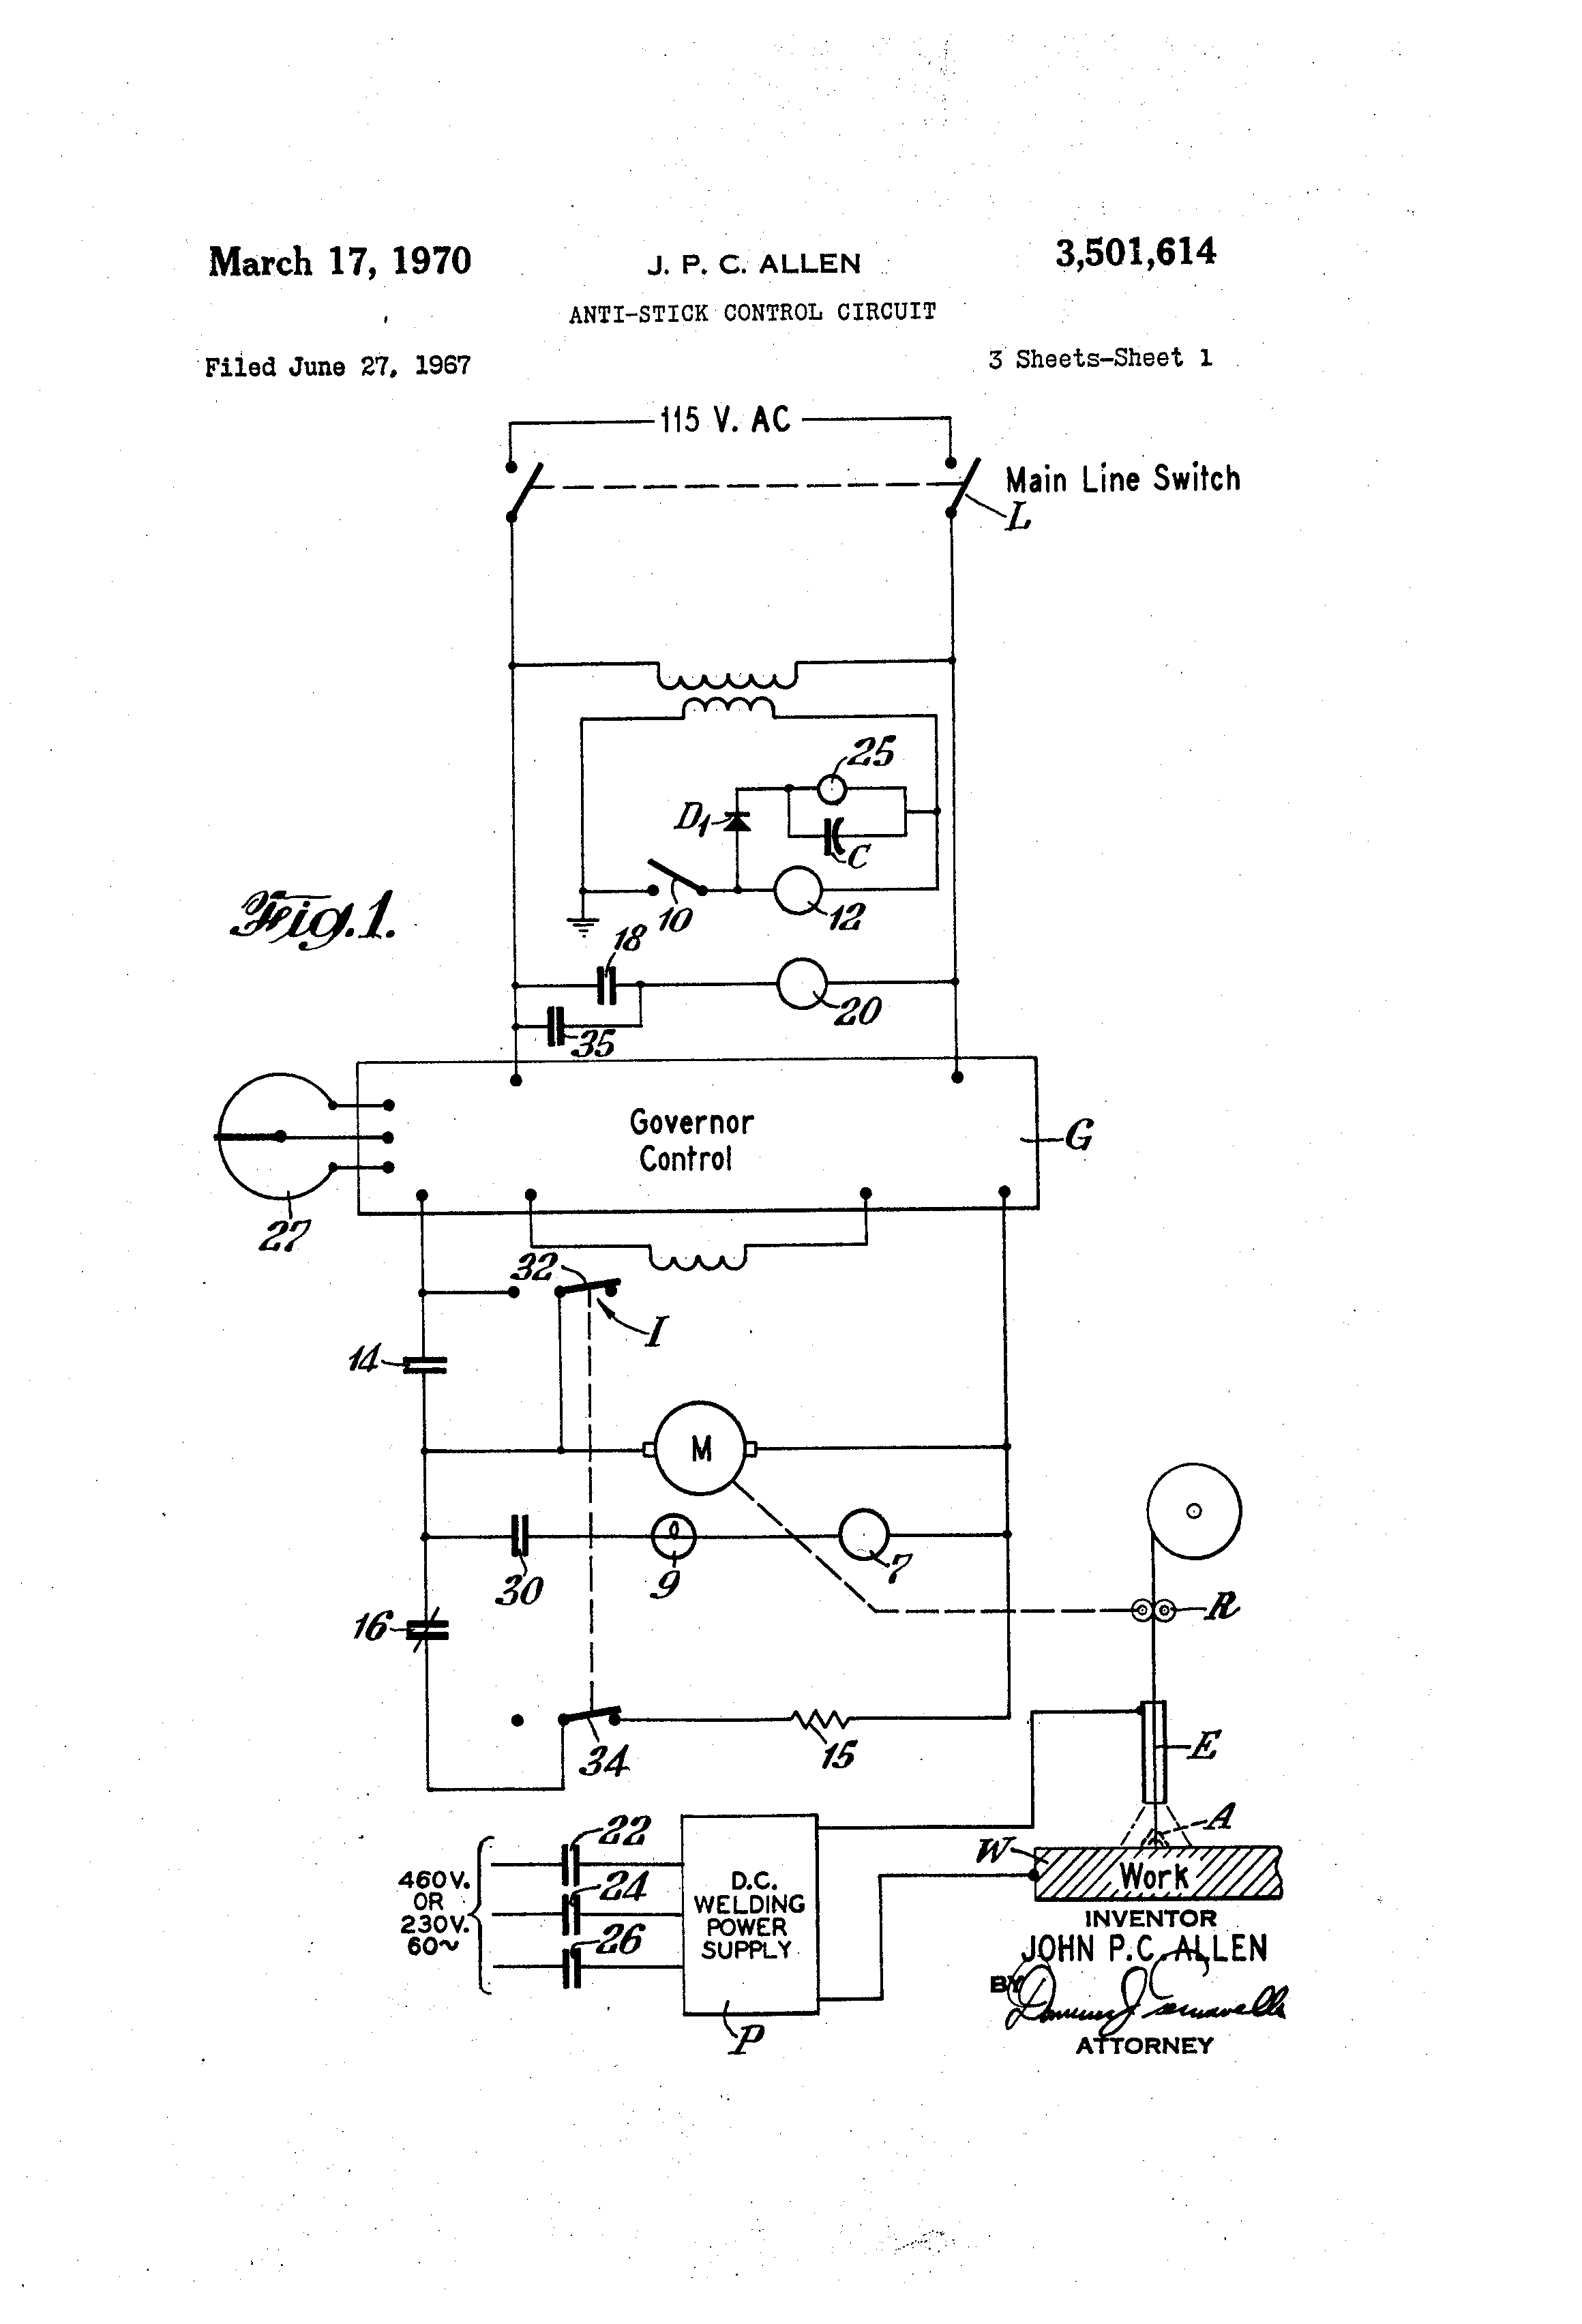 Mig Welder Schematic With Solid State Relay And Rectifier Solidstaterelay Patent Us3501614 Anti Stick Control Circuit Google Patents